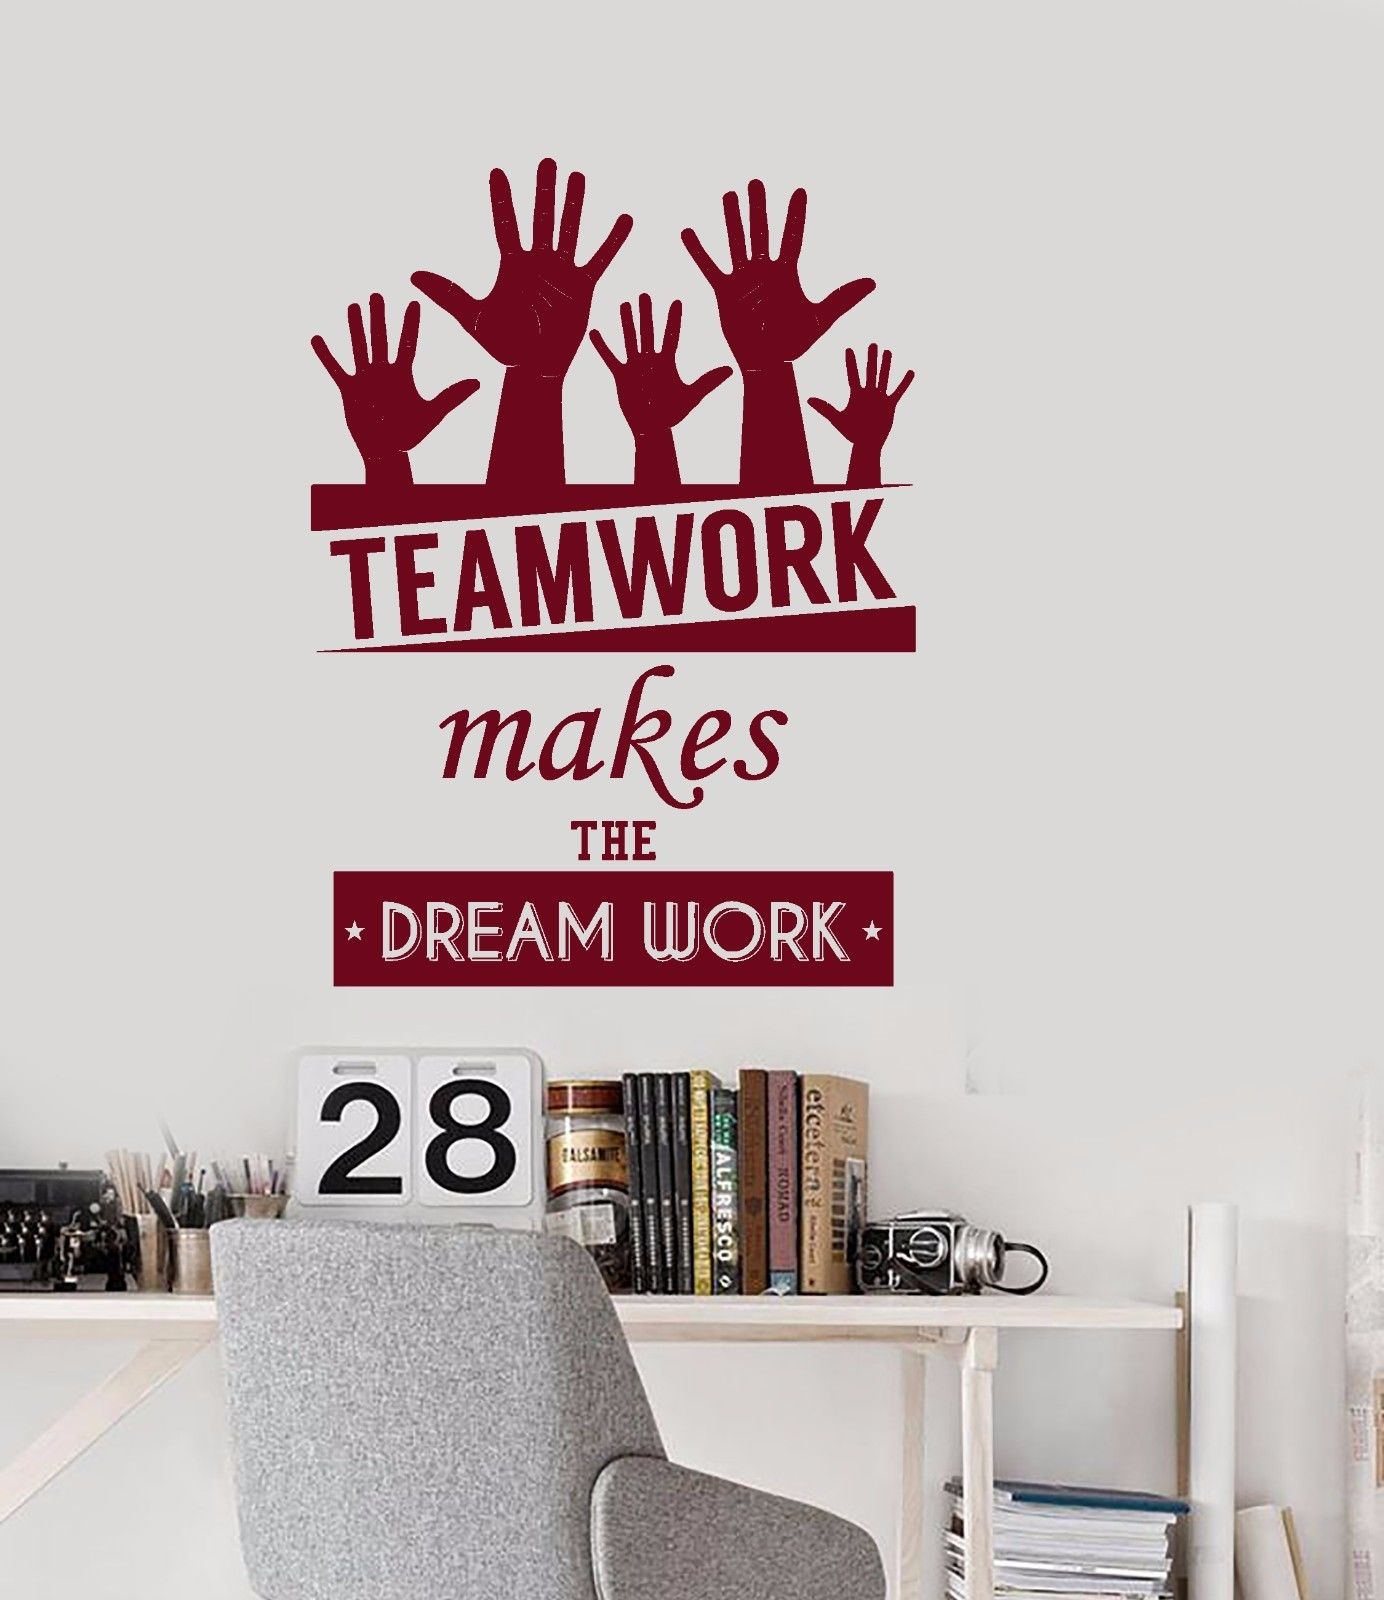 new wall vinyl decal quotes teamwork dream work office inspire words bedroom free shippingin stickers from home u0026 garden on aliexpresscom alibaba teamwork office wallpaper o12 office